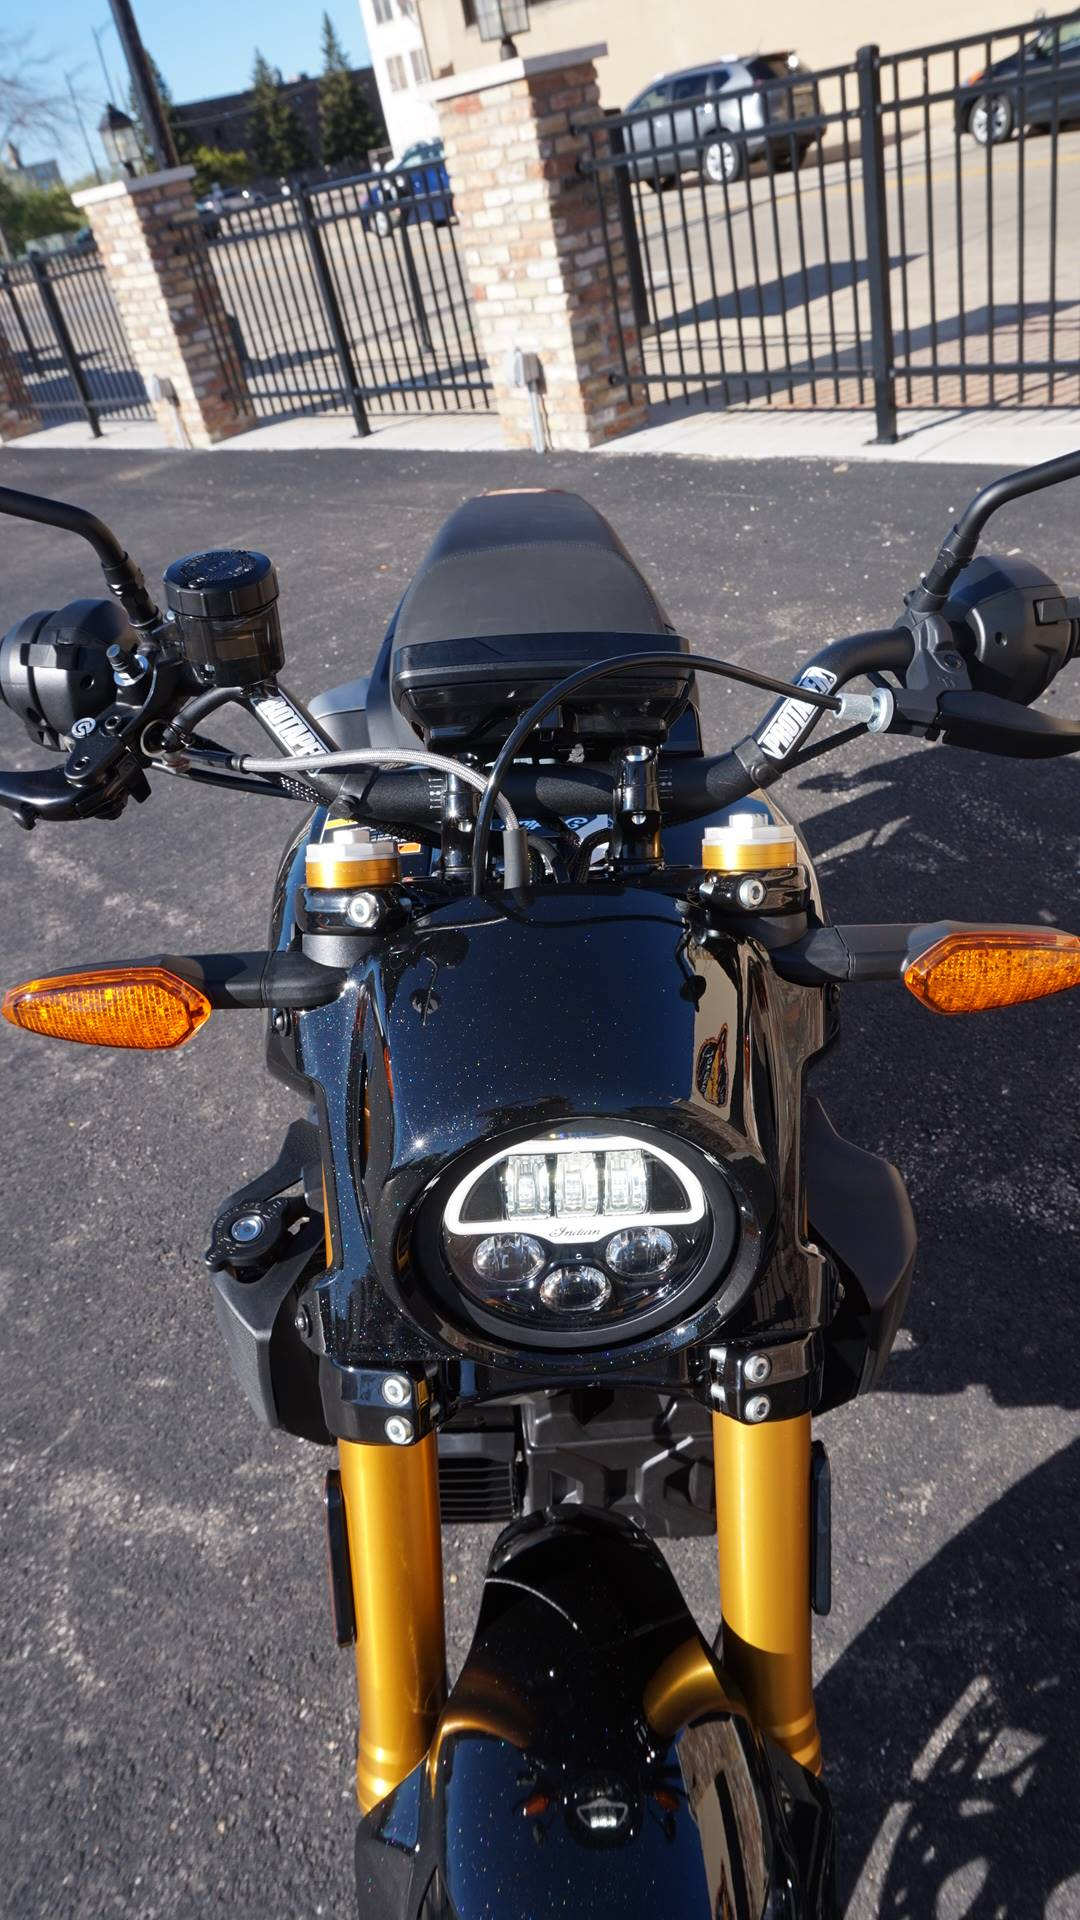 2019 Indian FTR™ 1200 S in Racine, Wisconsin - Photo 17